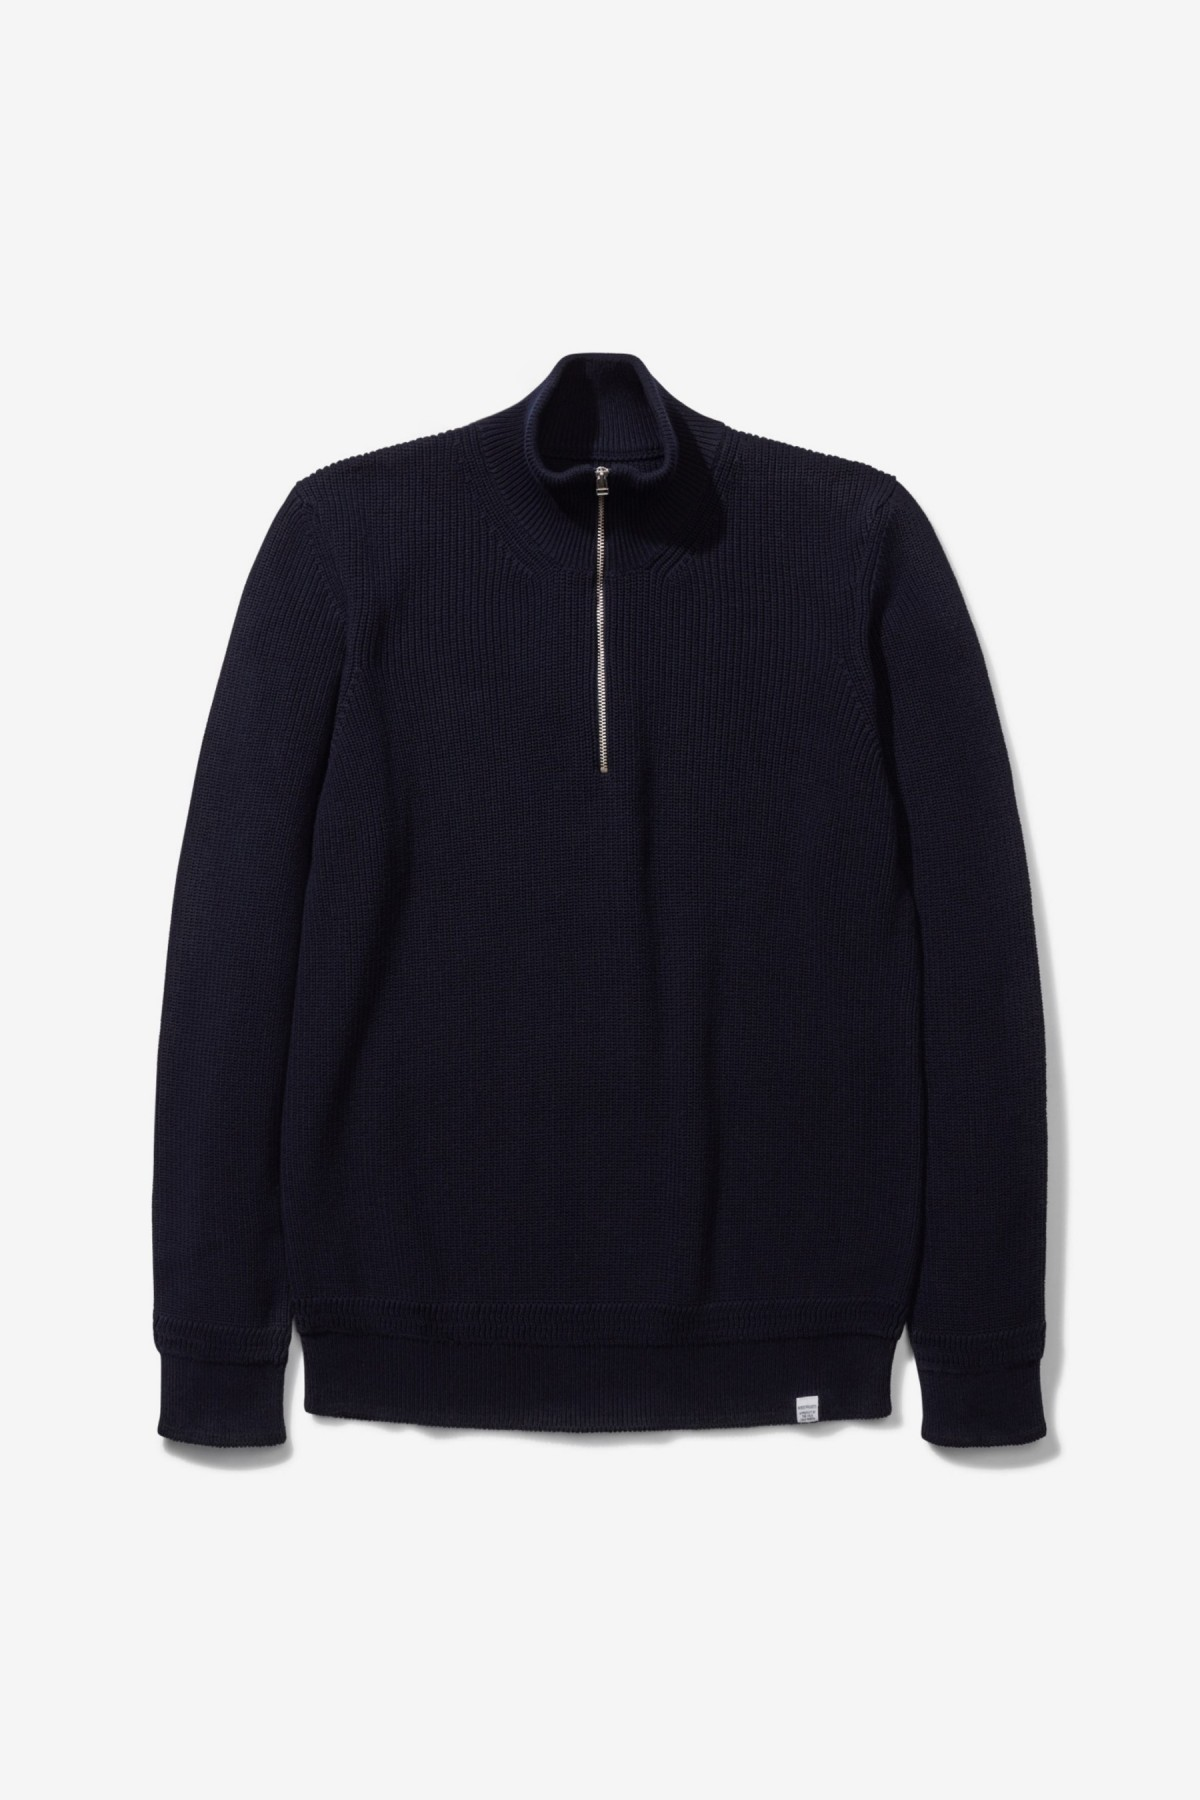 Norse Projects Fjord Guernsey in Dark Navy